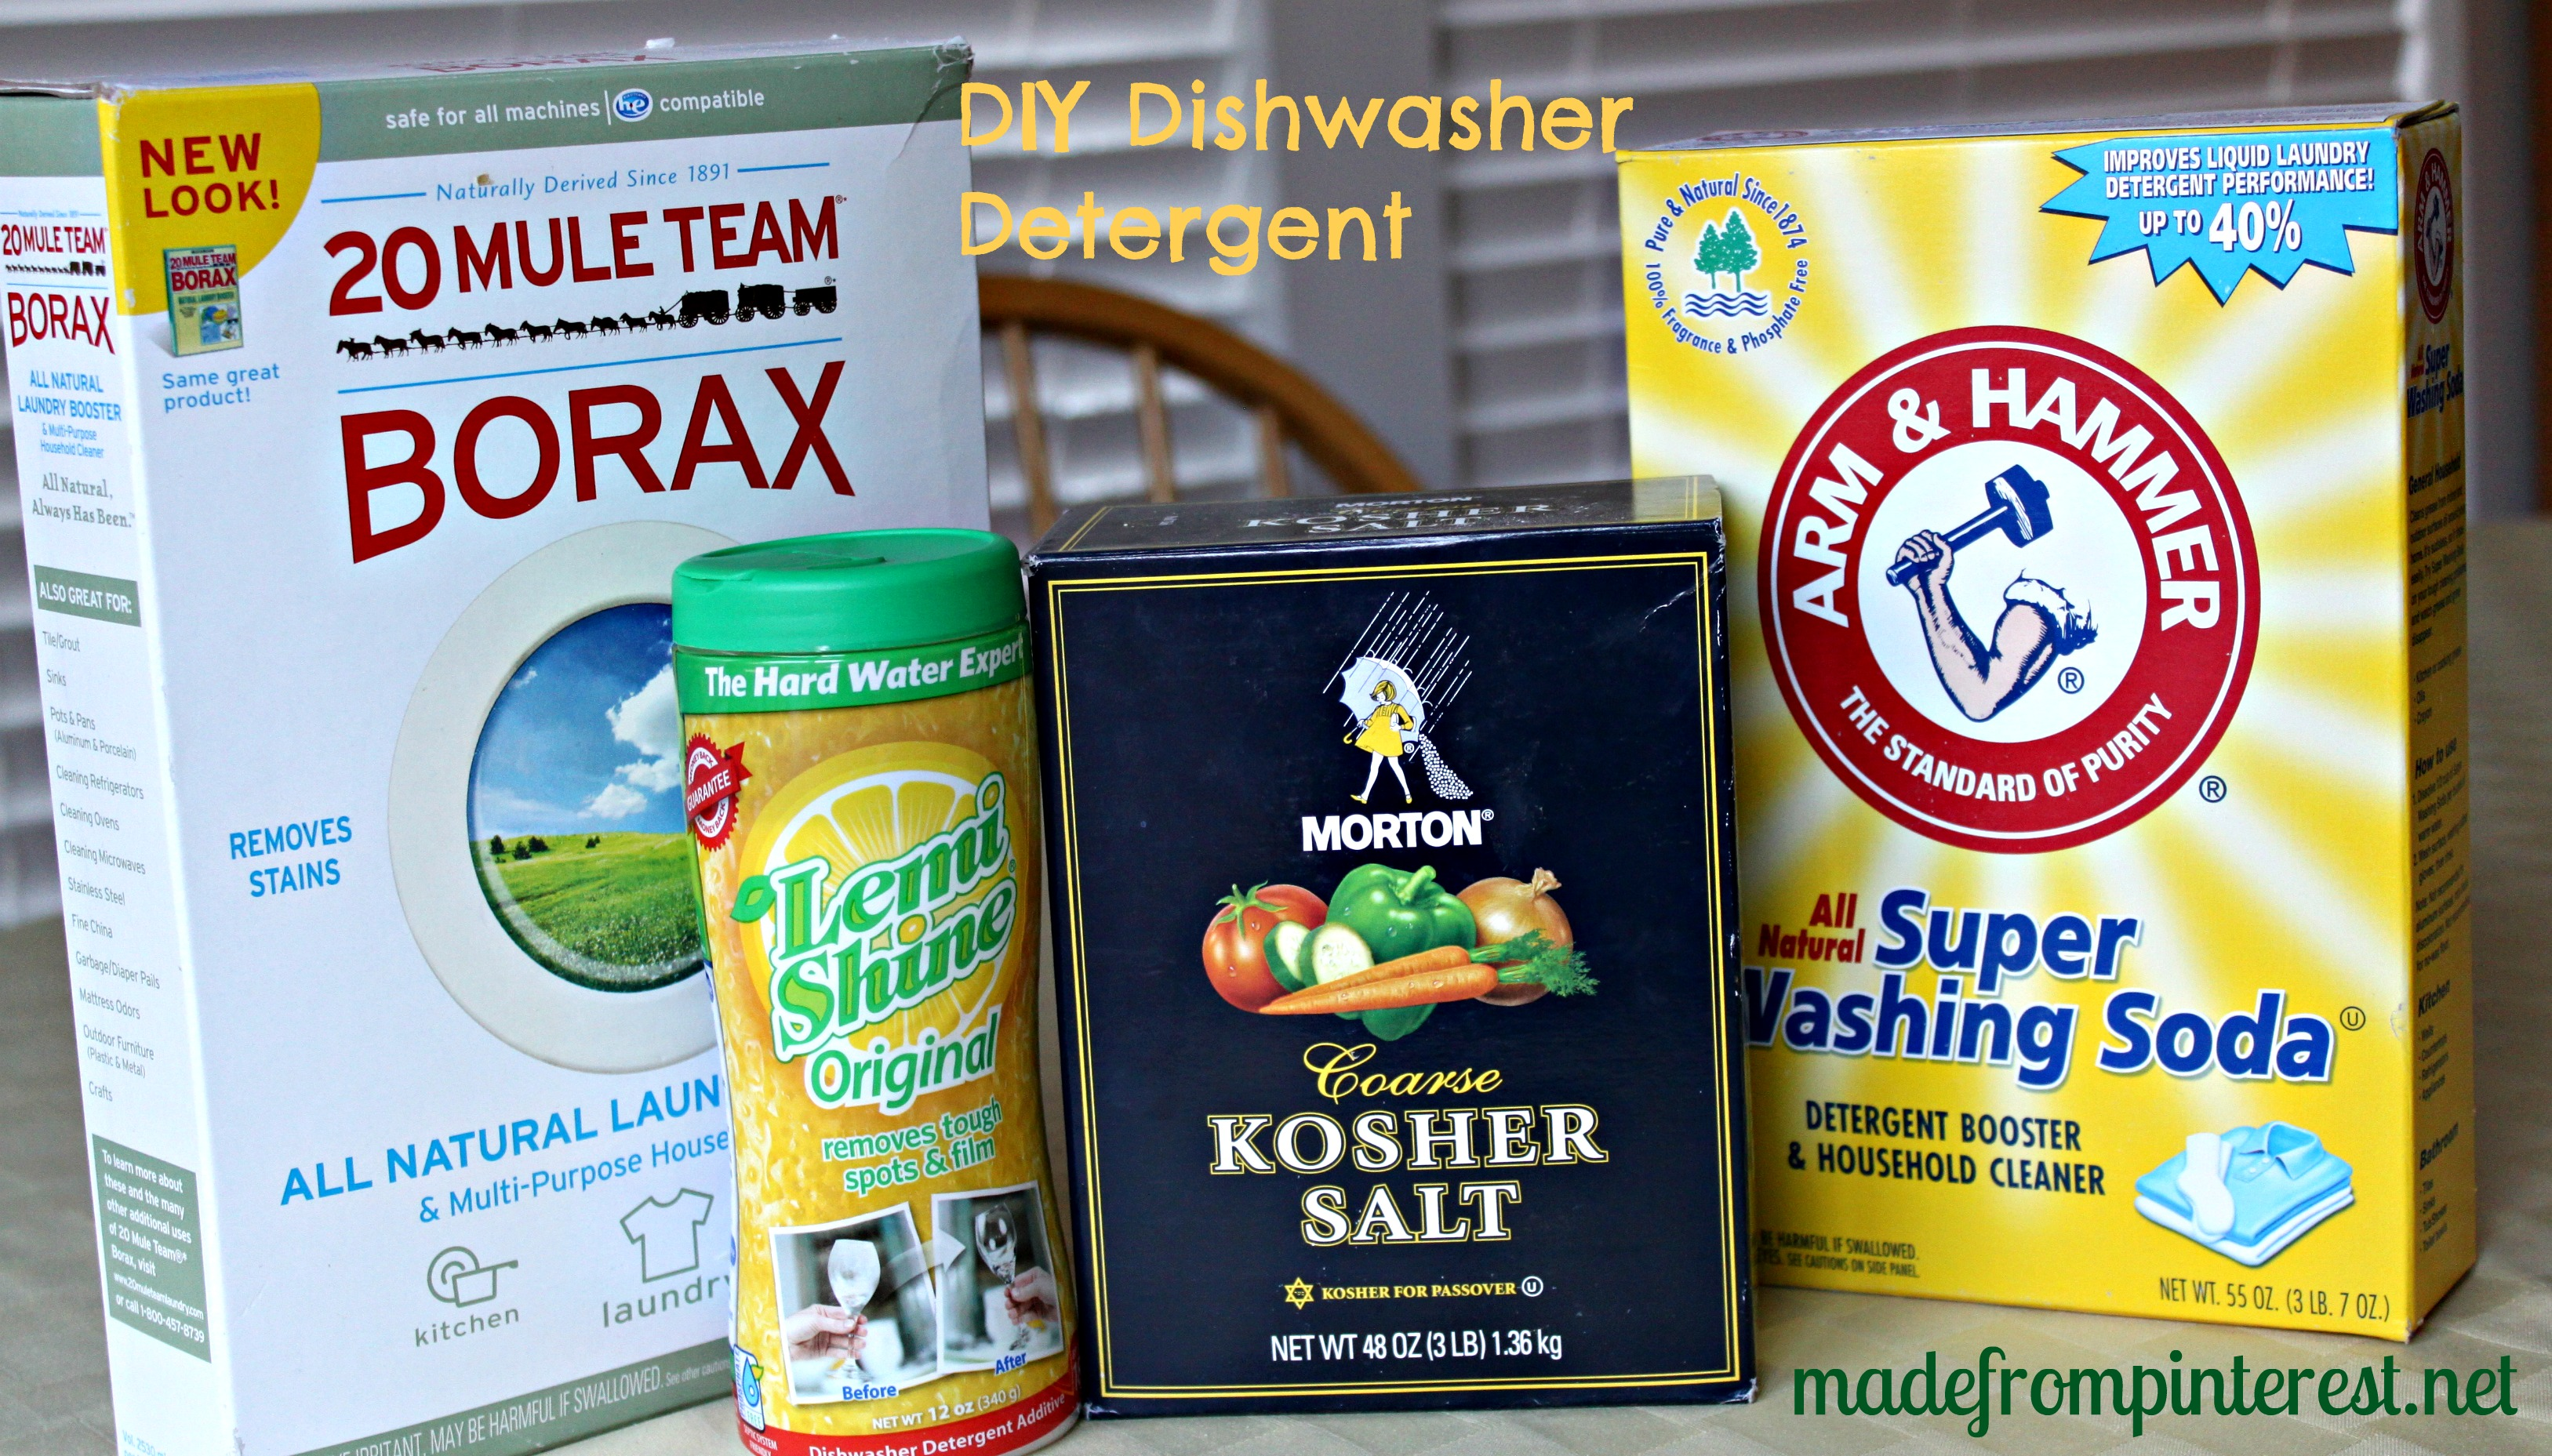 DIY – Make Your Own Dishwasher Detergent